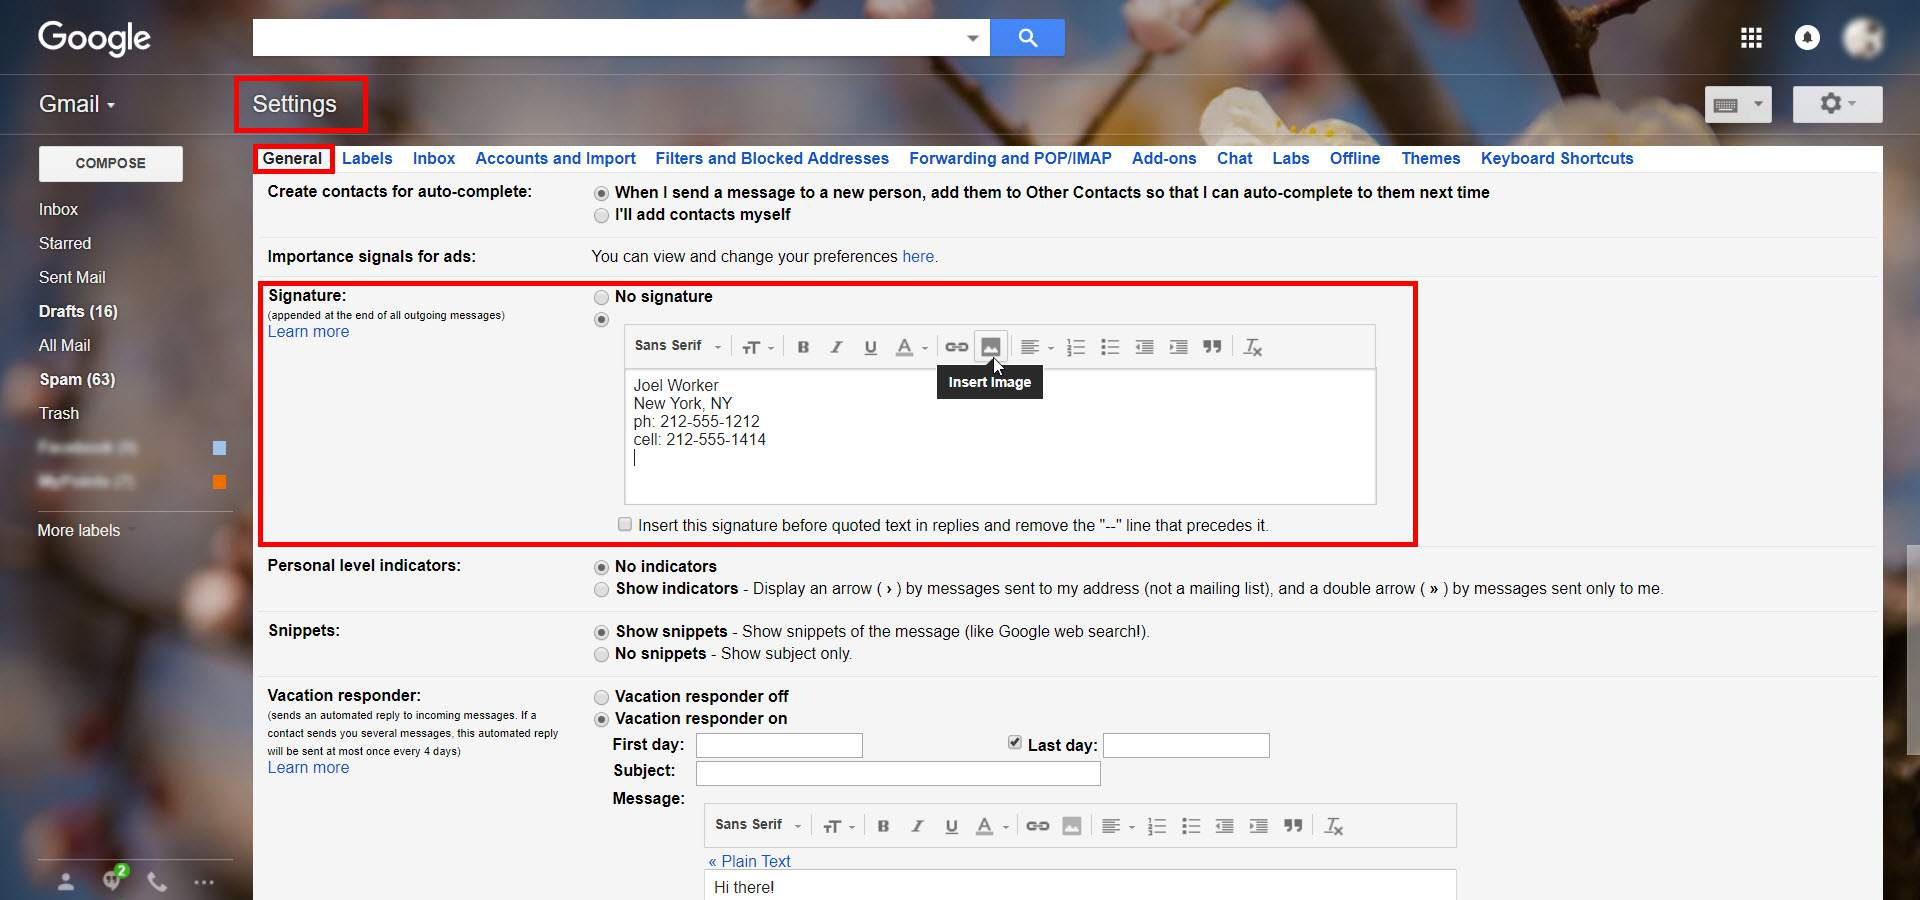 Screenshot of Gmail Settings showing an unfinished signature with the insert image option highlighted.